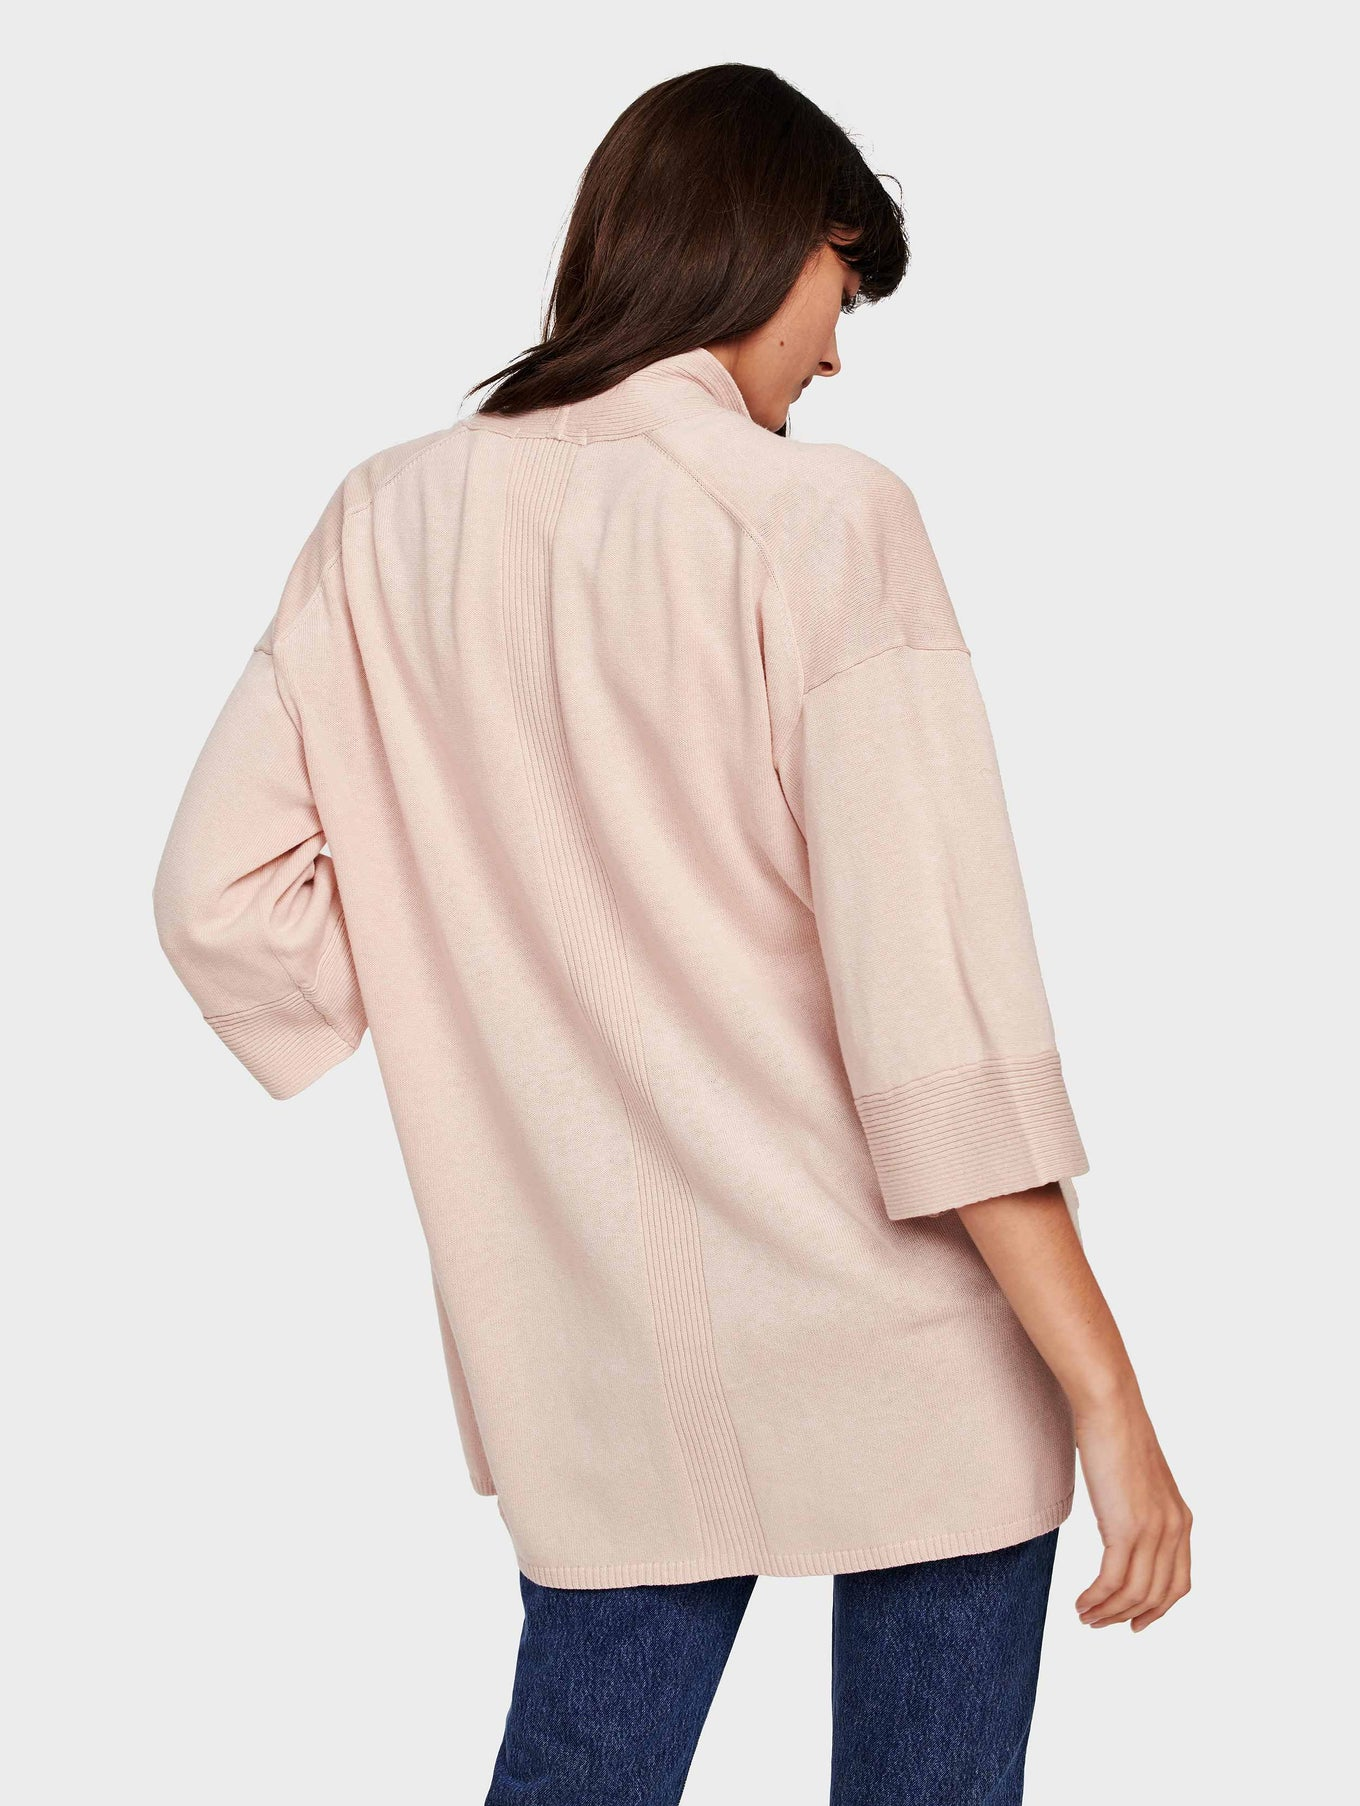 Organic Cotton Belted Rib Trim Cardigan - Rosewater Heather - Image 3